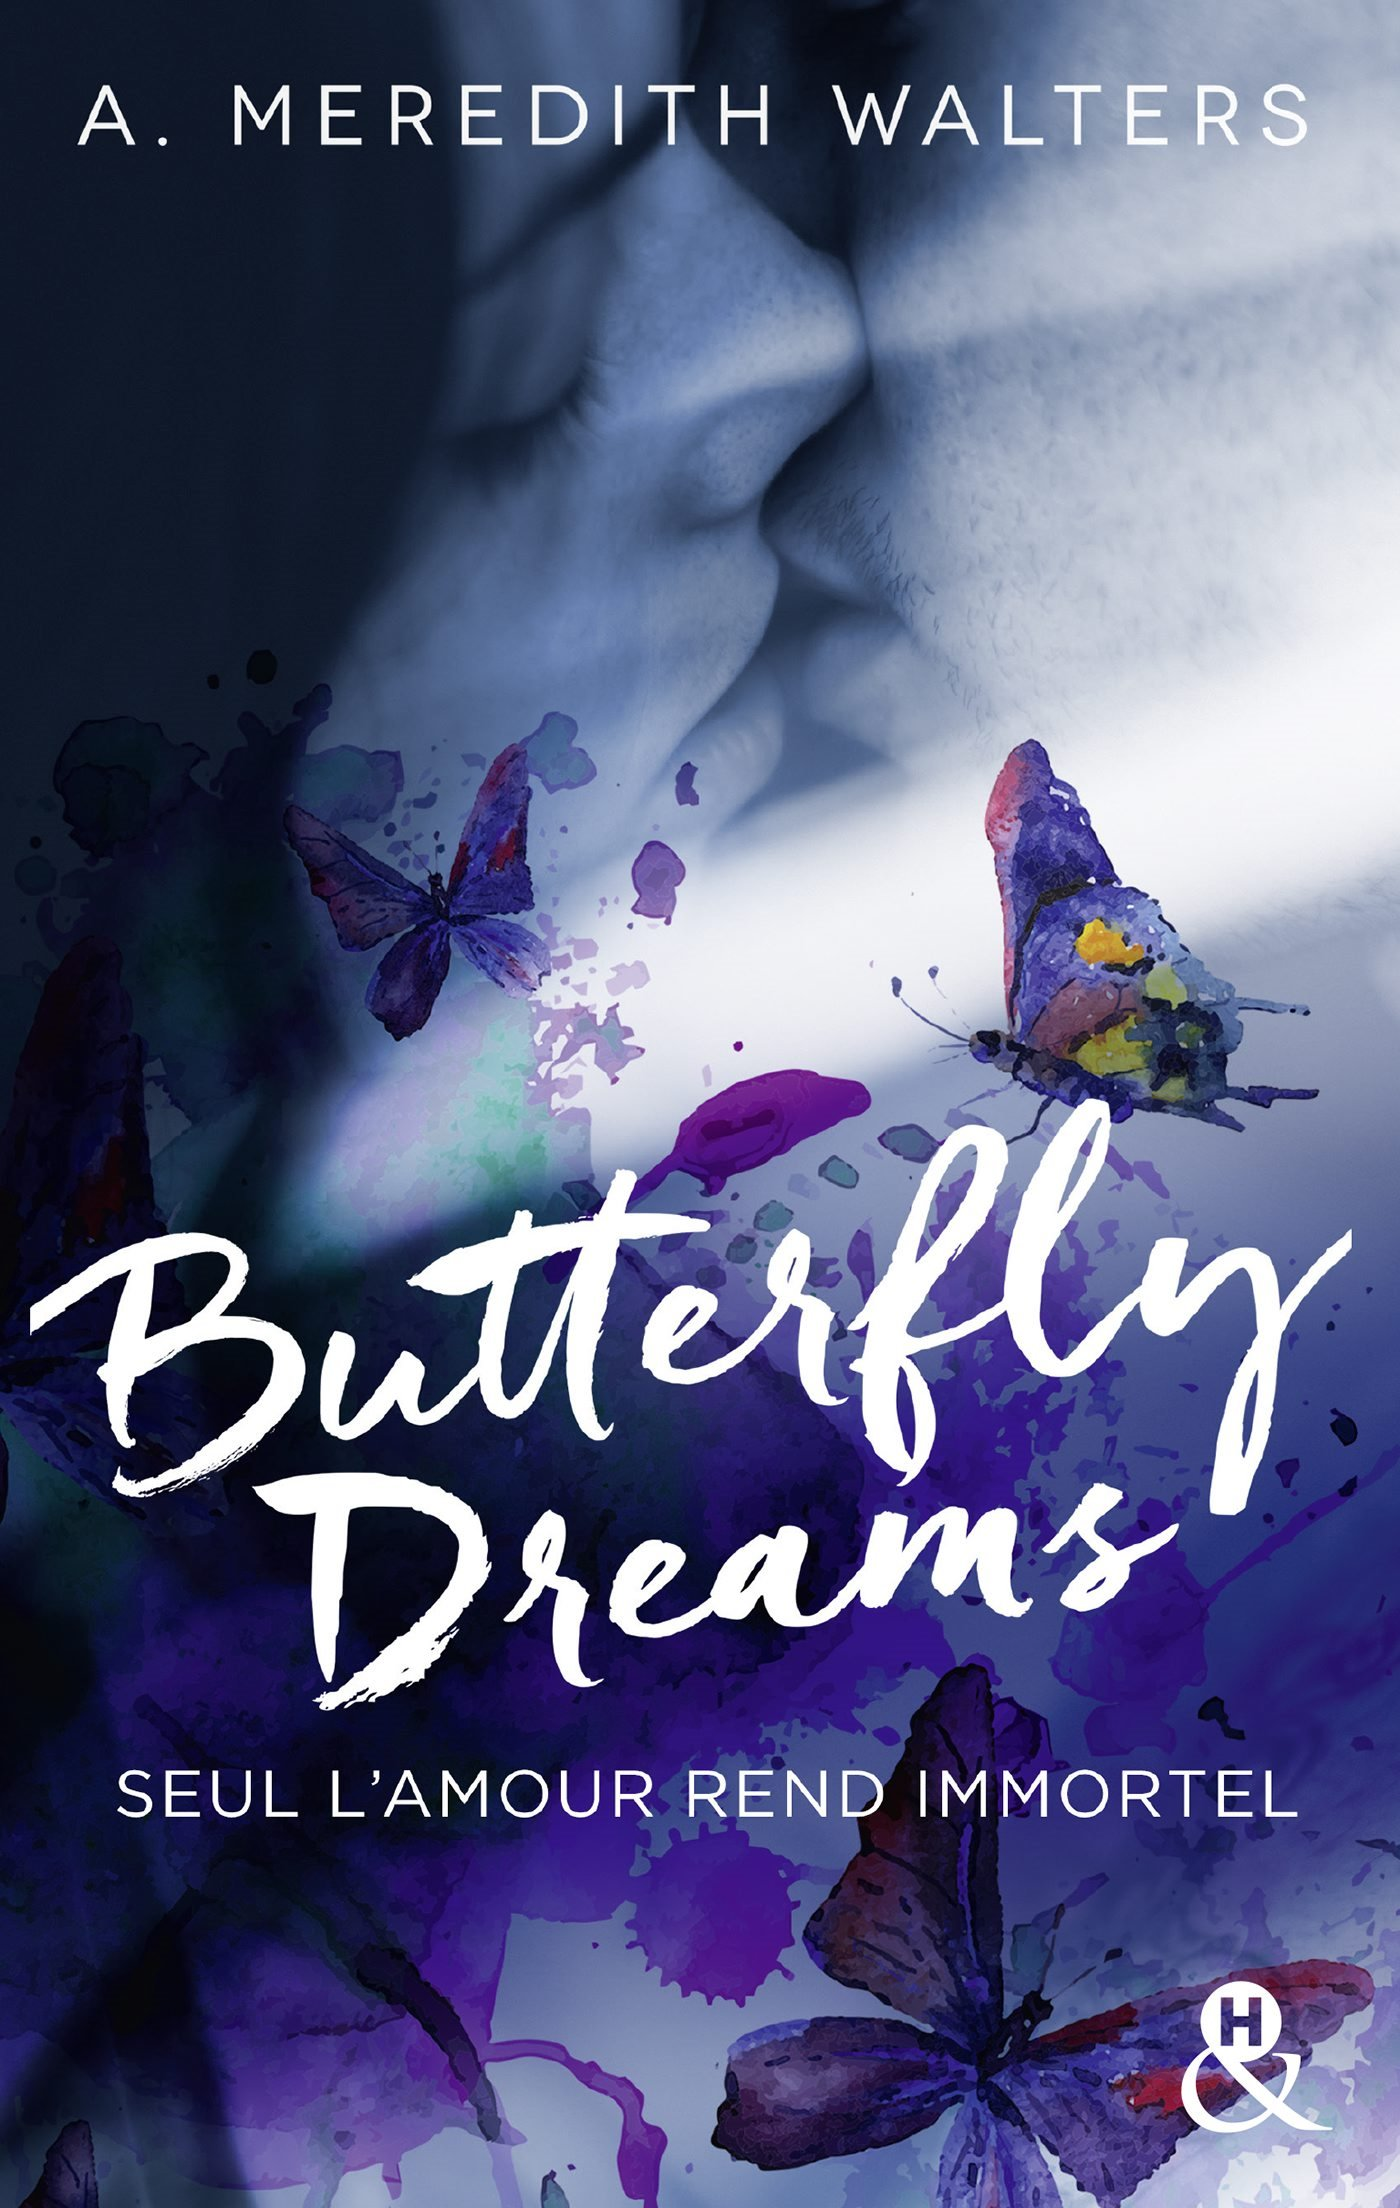 Couverture : A. MEREDITH WALTERS, Butterfly Dreams, Harlequin